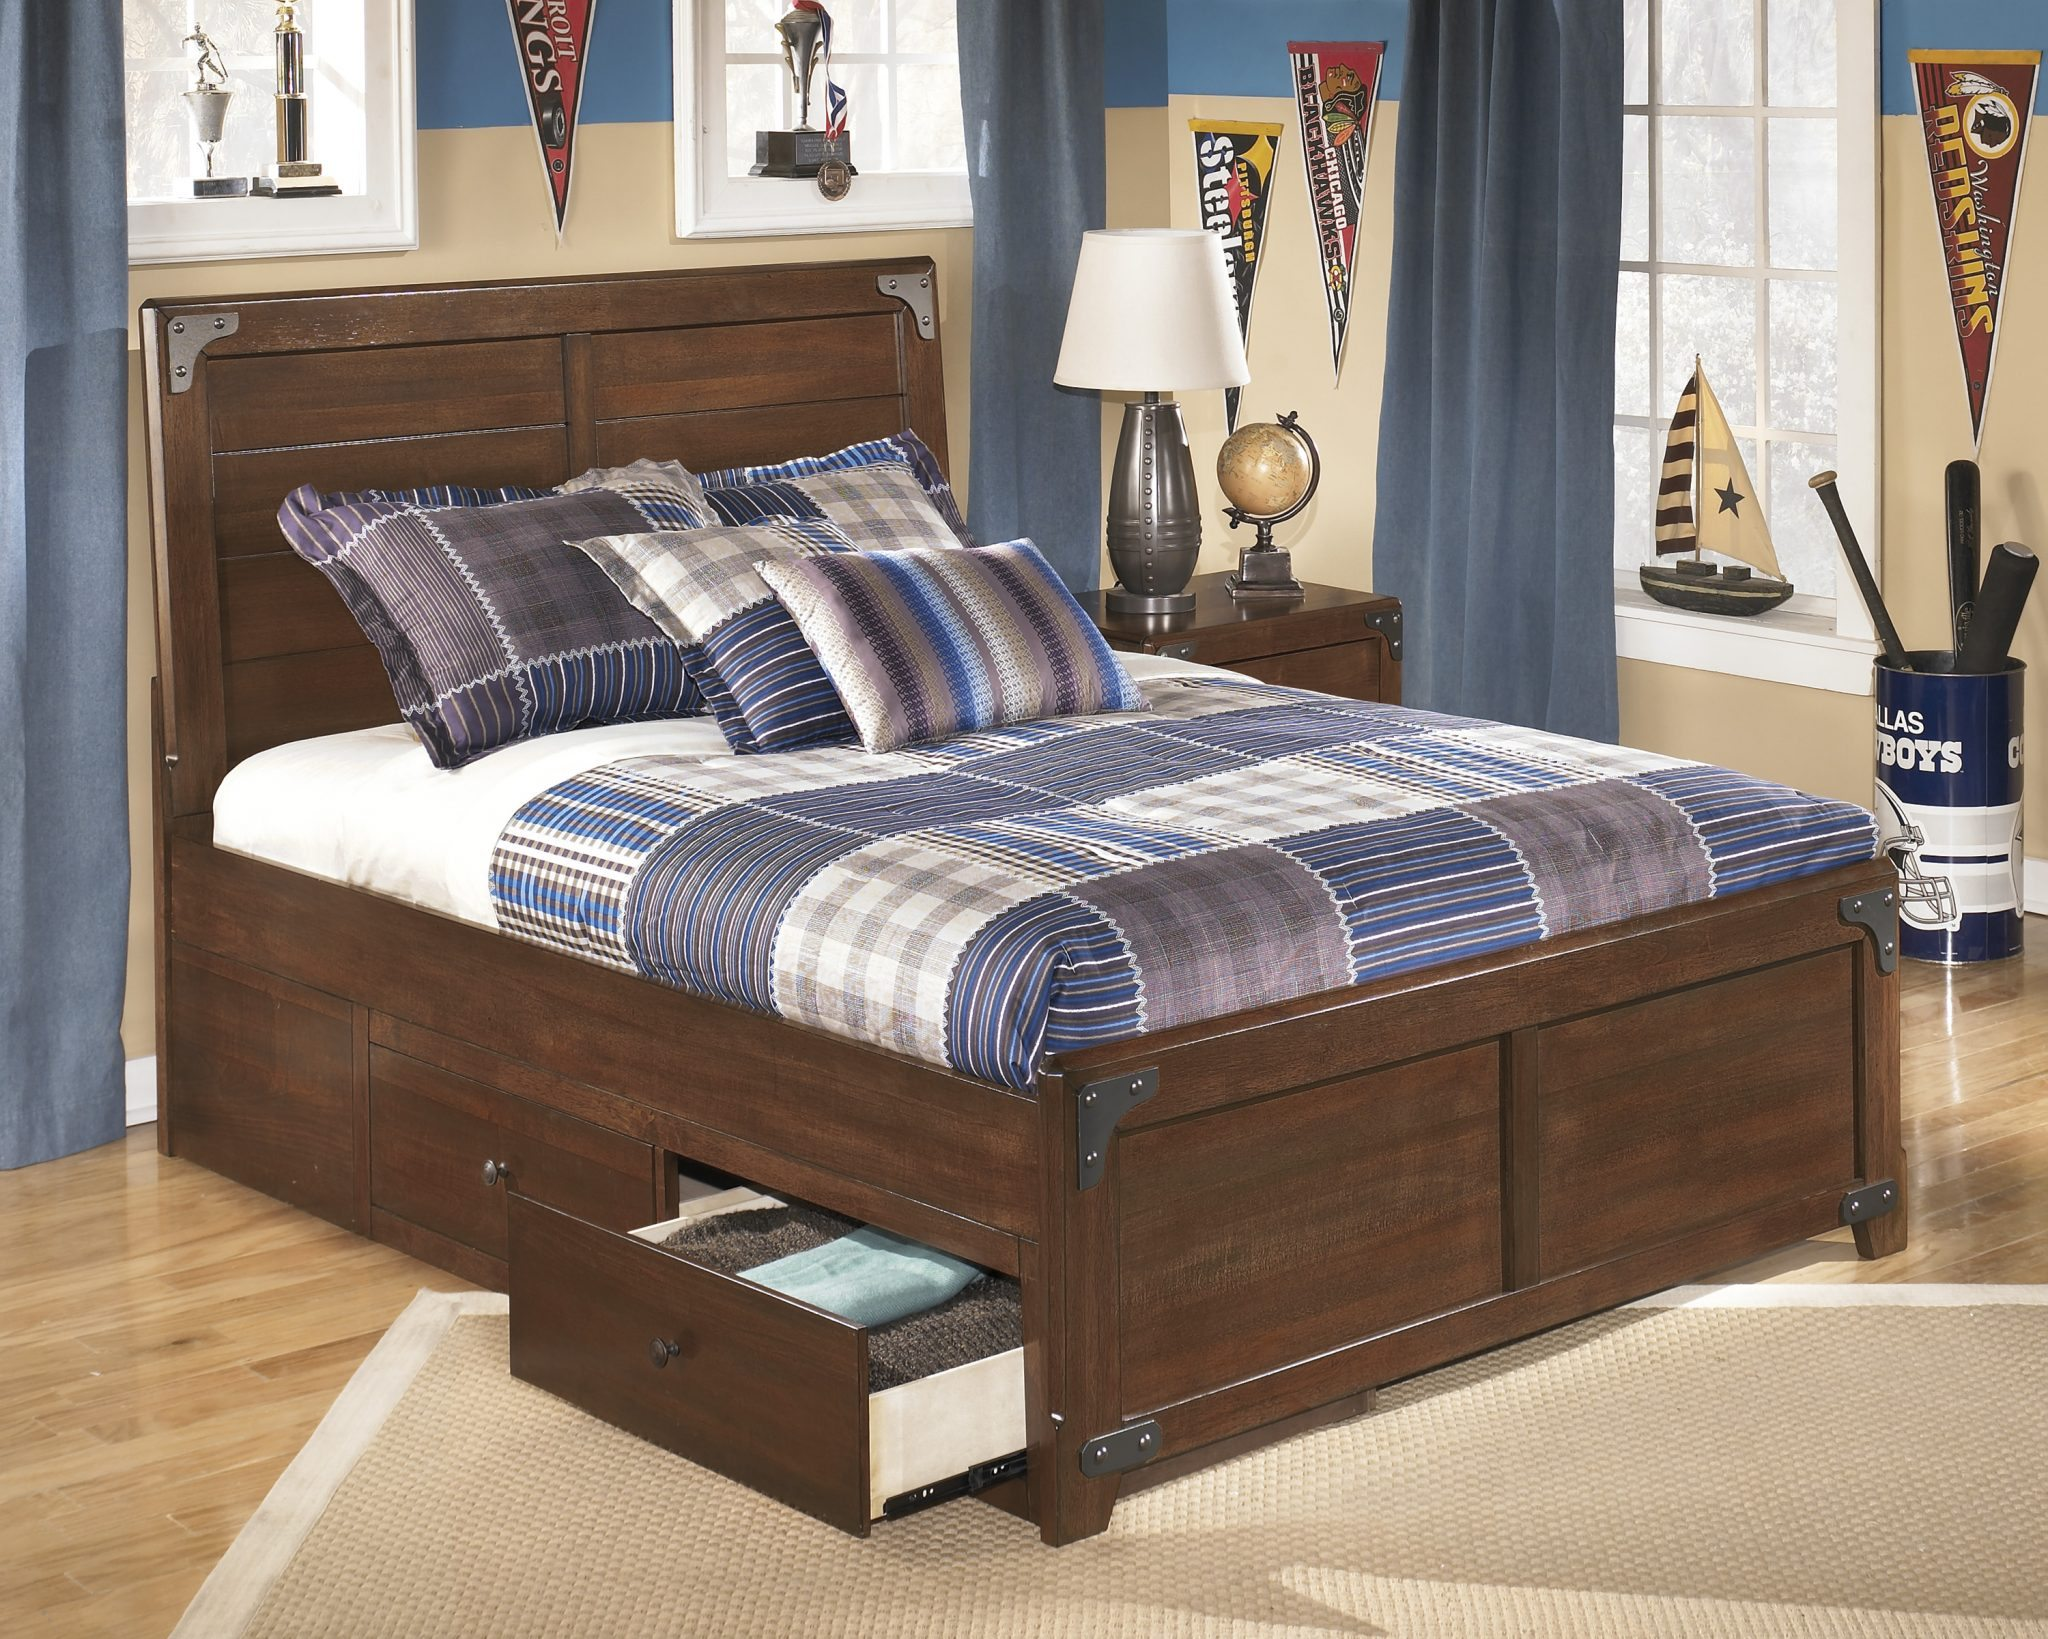 Image of: Ashley Furniture Bed With Storage King